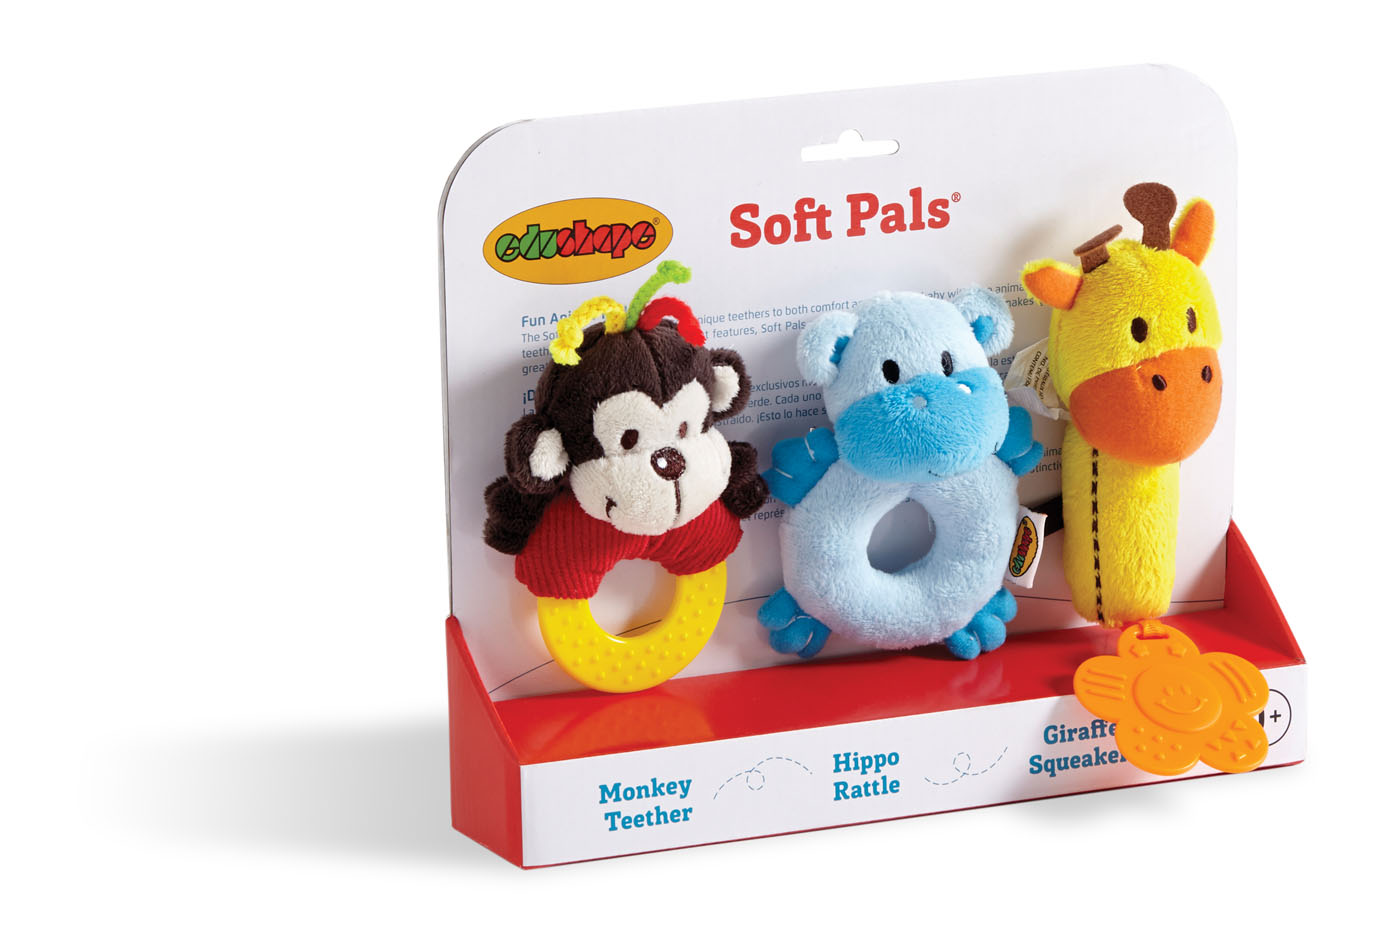 Soft Pals – Teether, Rattle, Squeaker